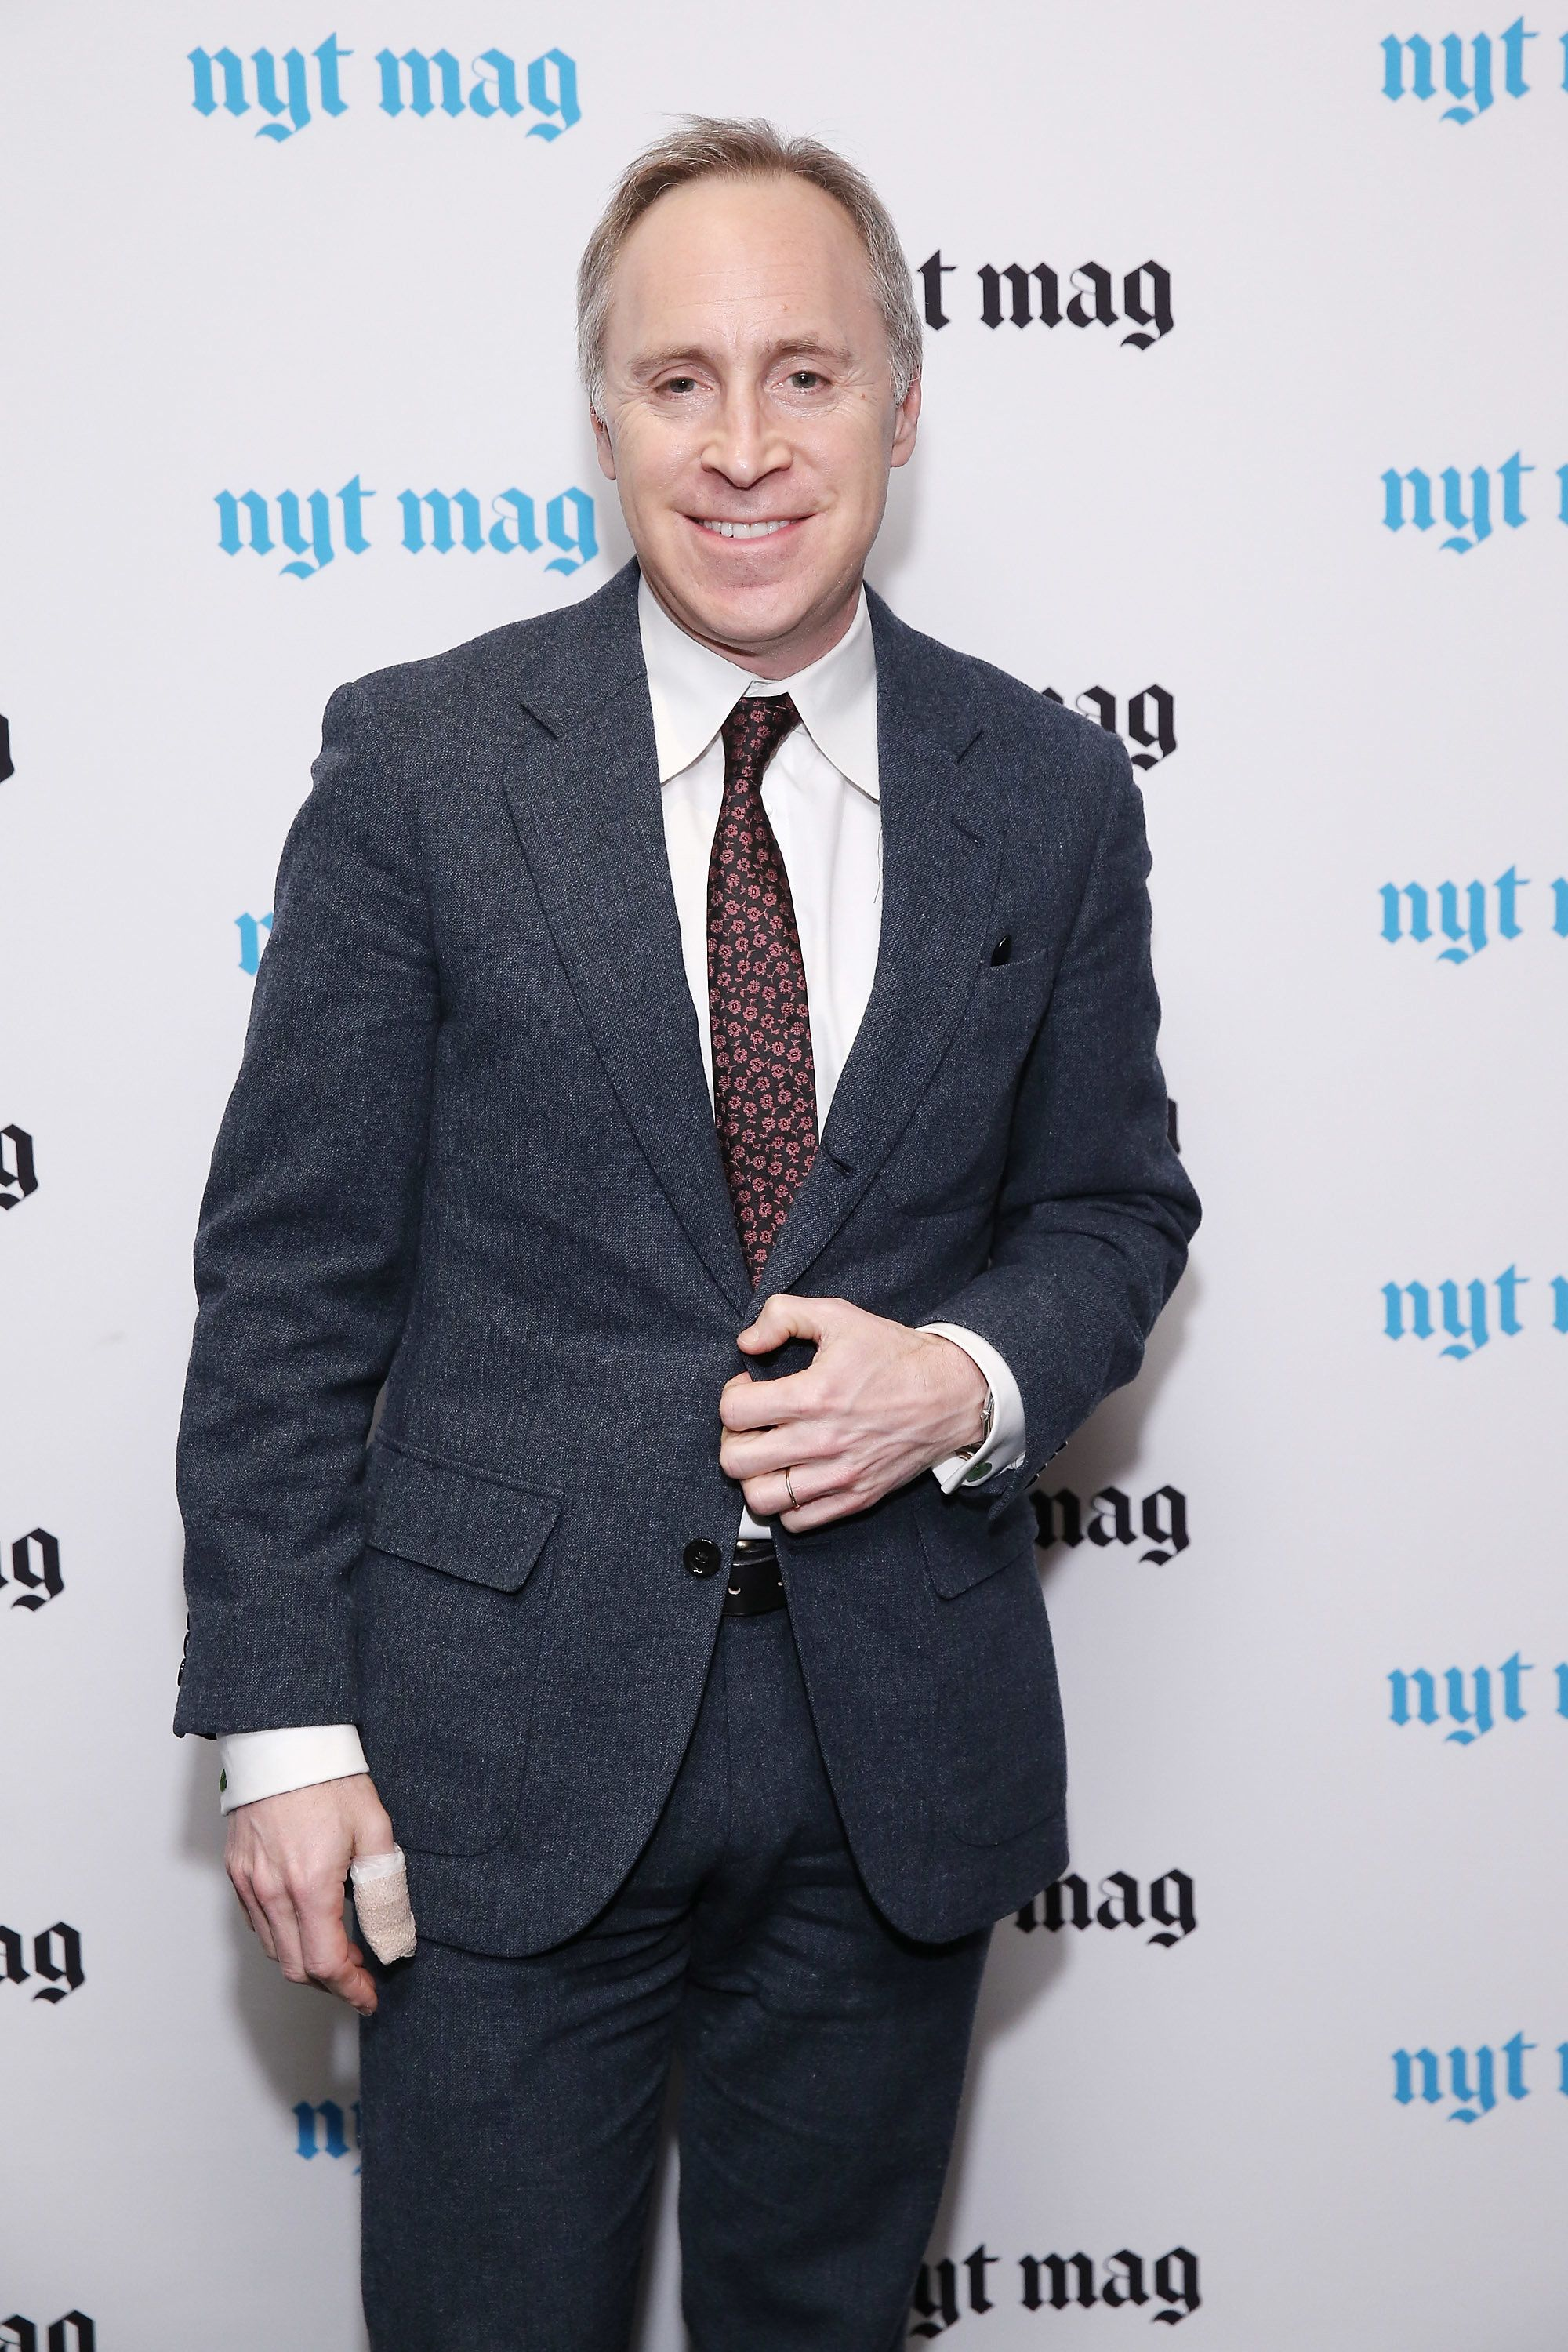 NEW YORK, NY - FEBRUARY 18:  Editor-in-Chief of Slate Group Jacob Weisberg attends The New York Times Magazine Relaunch Event on February 18, 2015 in New York City.  (Photo by Neilson Barnard/Getty Images)